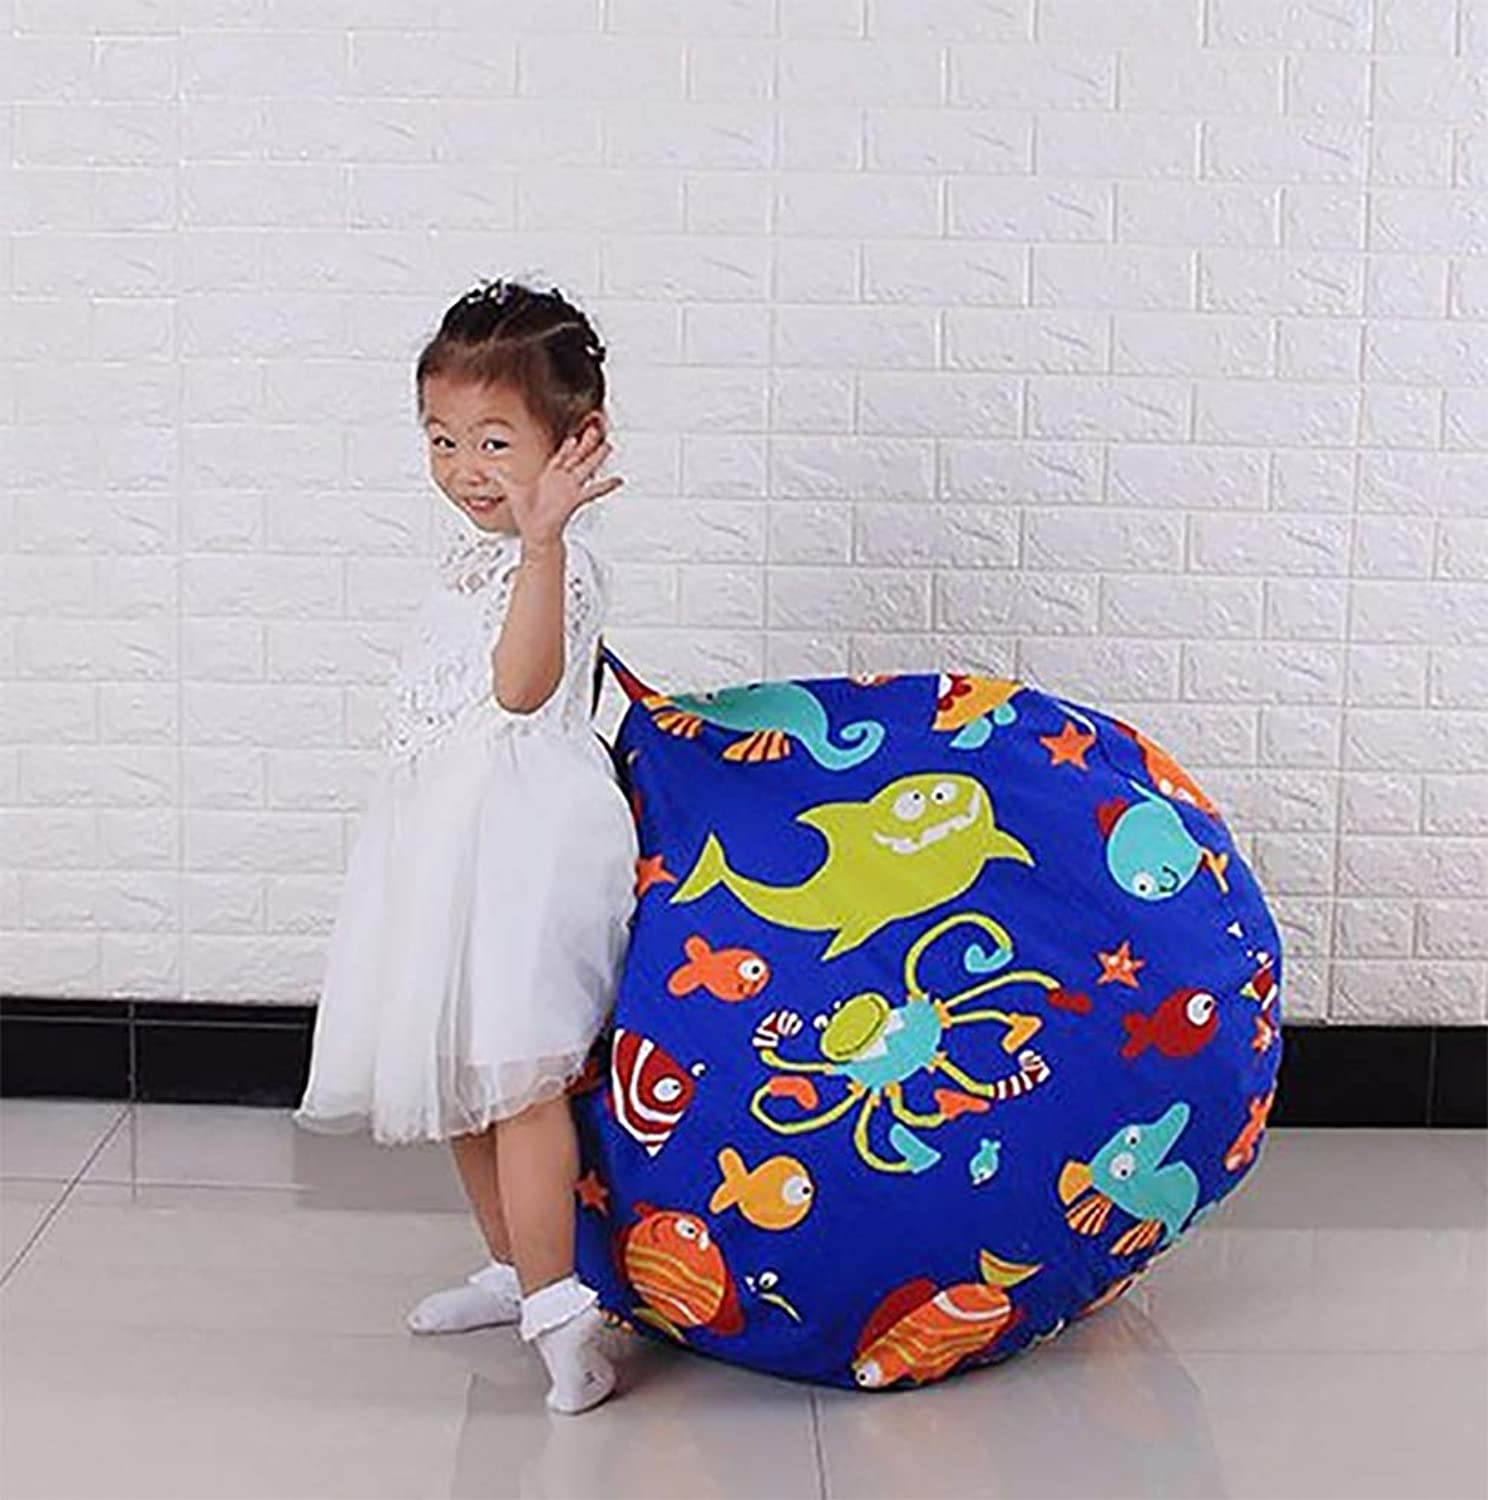 ZLQF Canvas Stuffed Animal Storage Bean Bag Chair Kids Plush Toy Clothes Quilts Organizer 38Inch